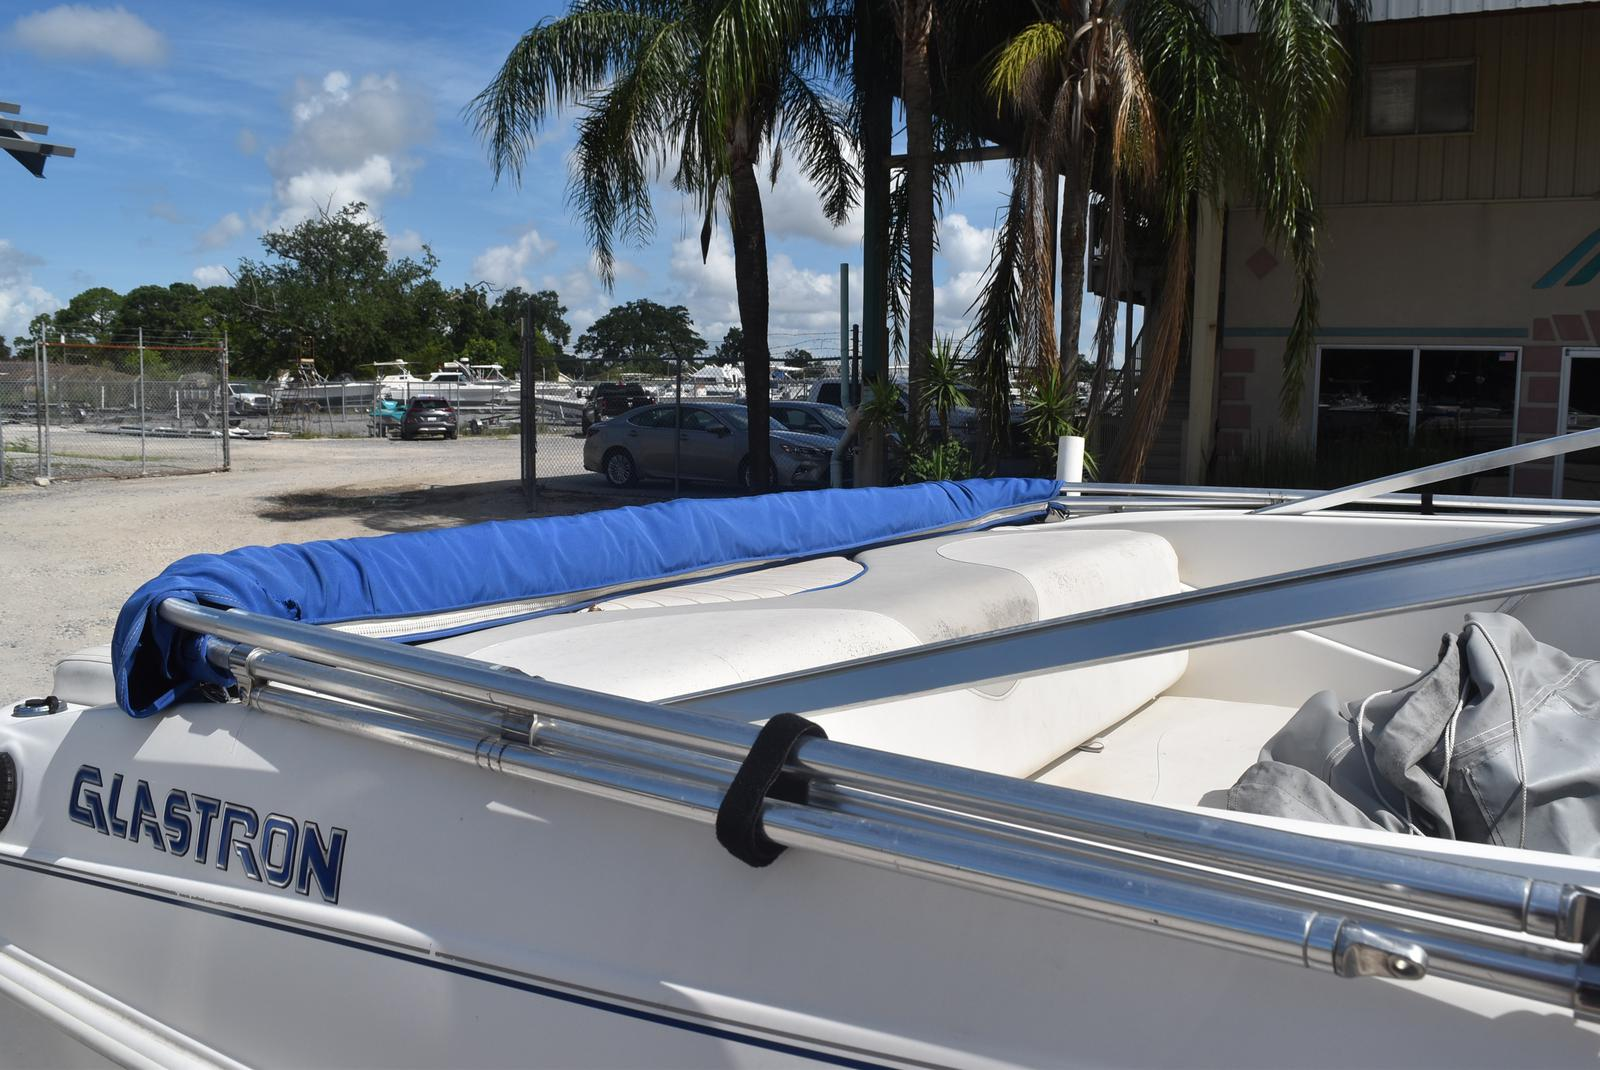 2006 Glastron boat for sale, model of the boat is MX 175 & Image # 21 of 21